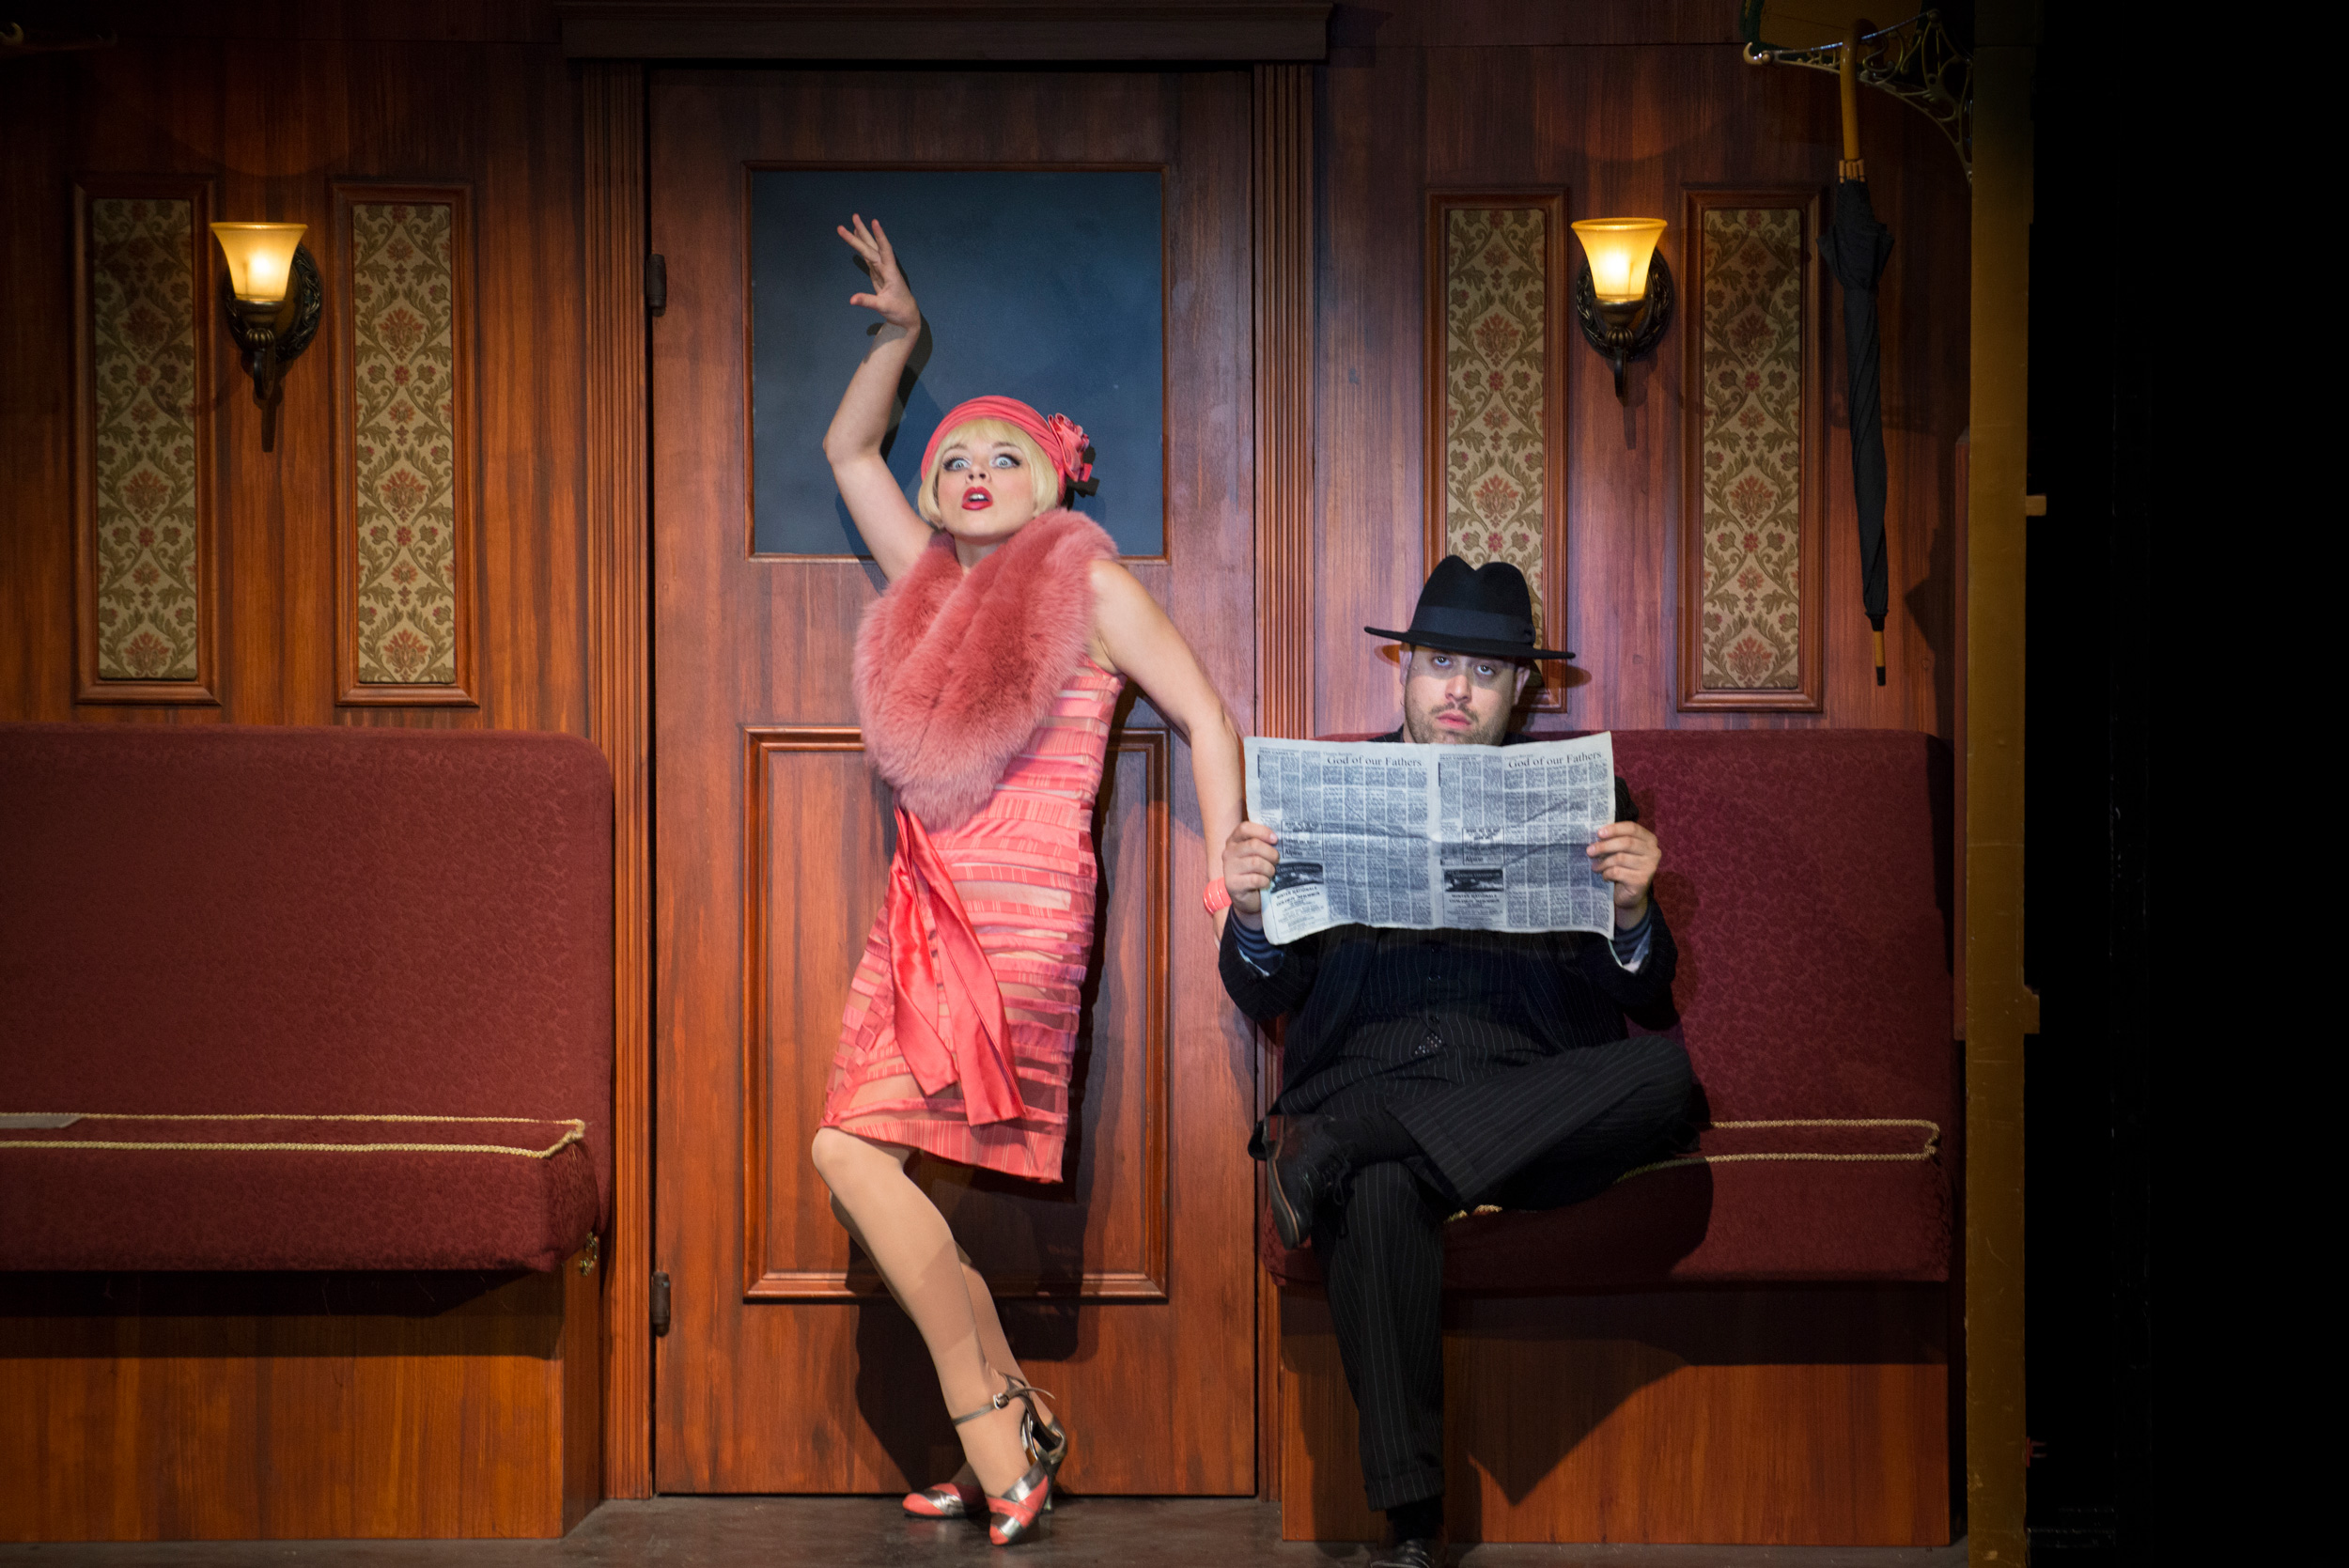 Jemma Jane and Reed Campbell in Bullets Over Broadway at the Ogunquit Playhouse, 2017 - Photo by Gary Ng